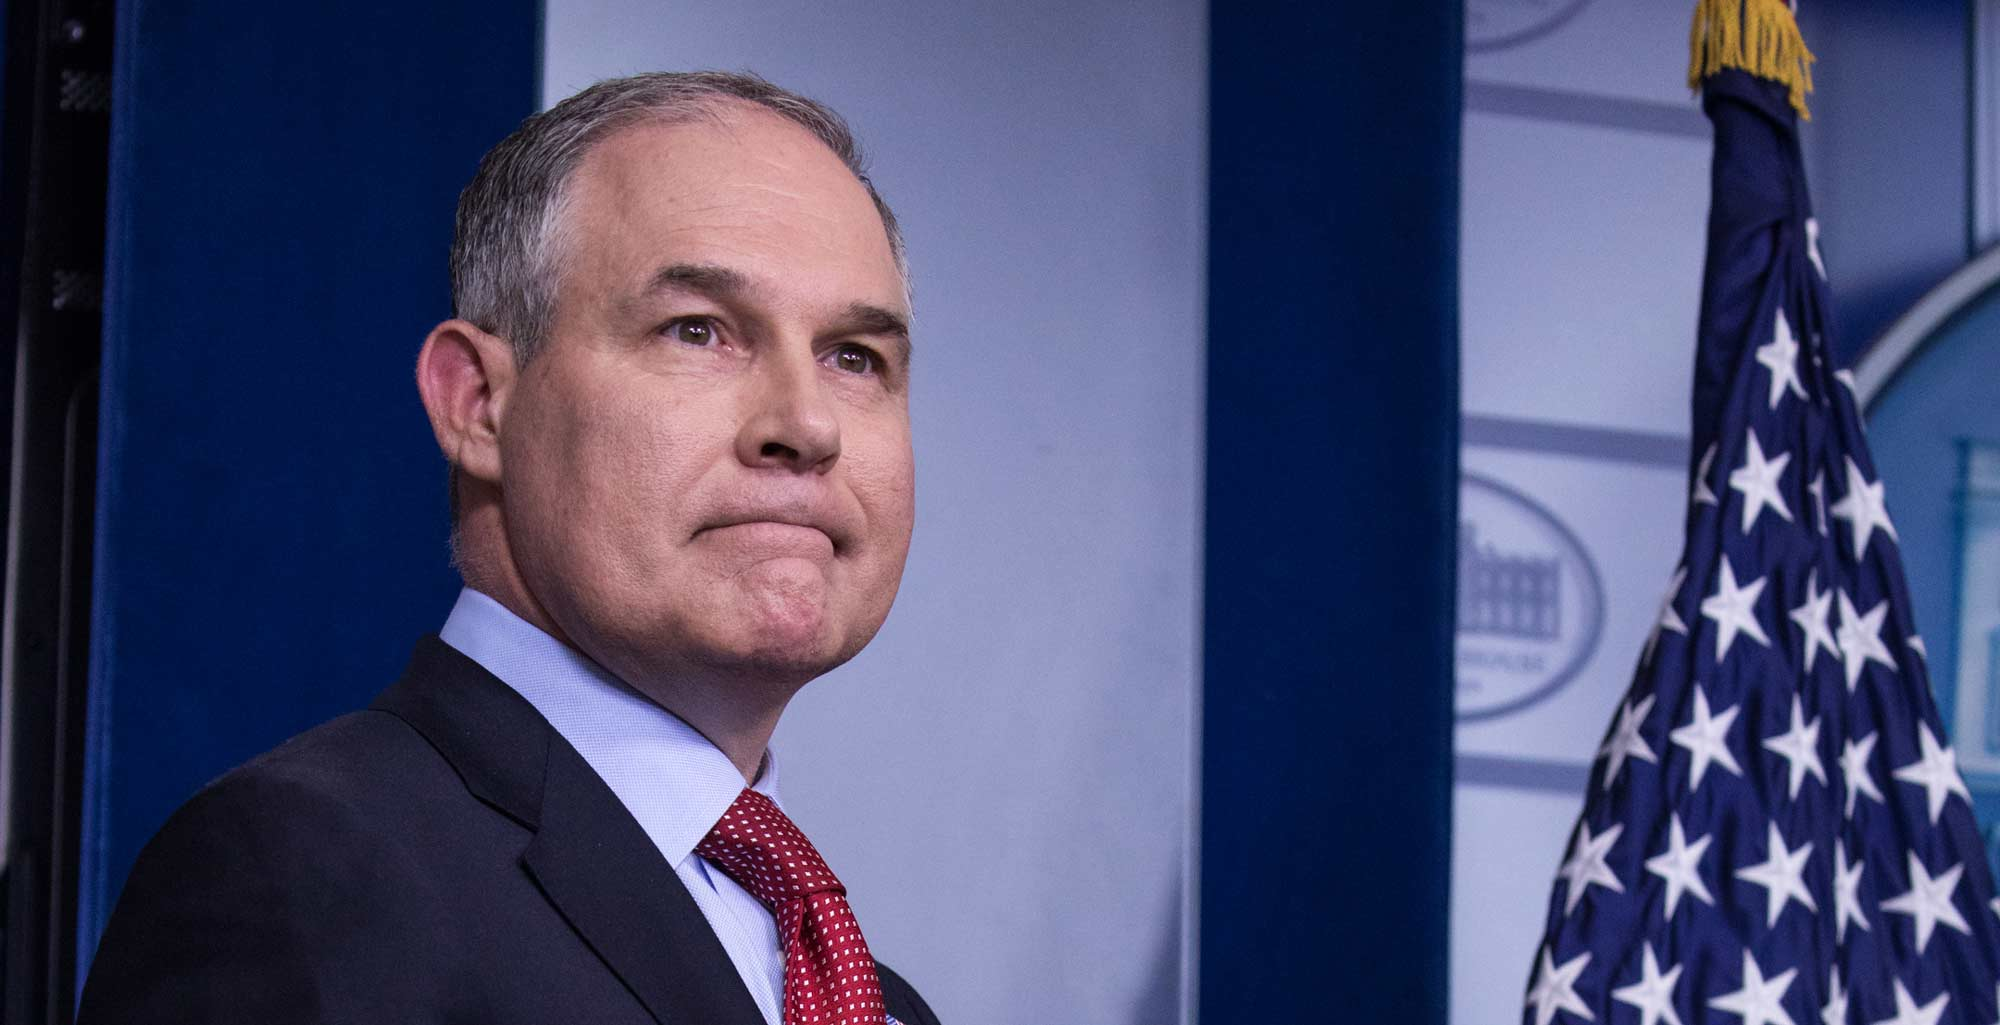 GAO: Pruitt's Pricey Privacy Booth Violated Federal Law